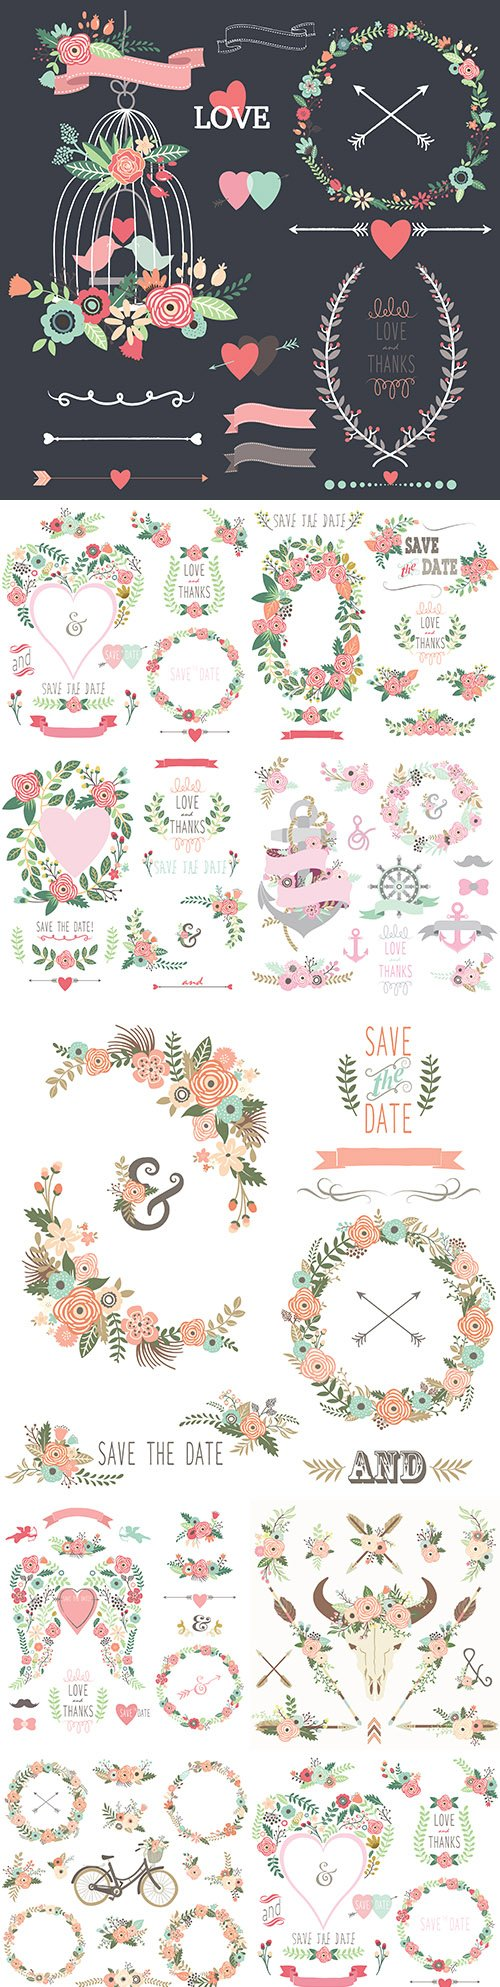 Vintage floral composition and old floral wreath and elements